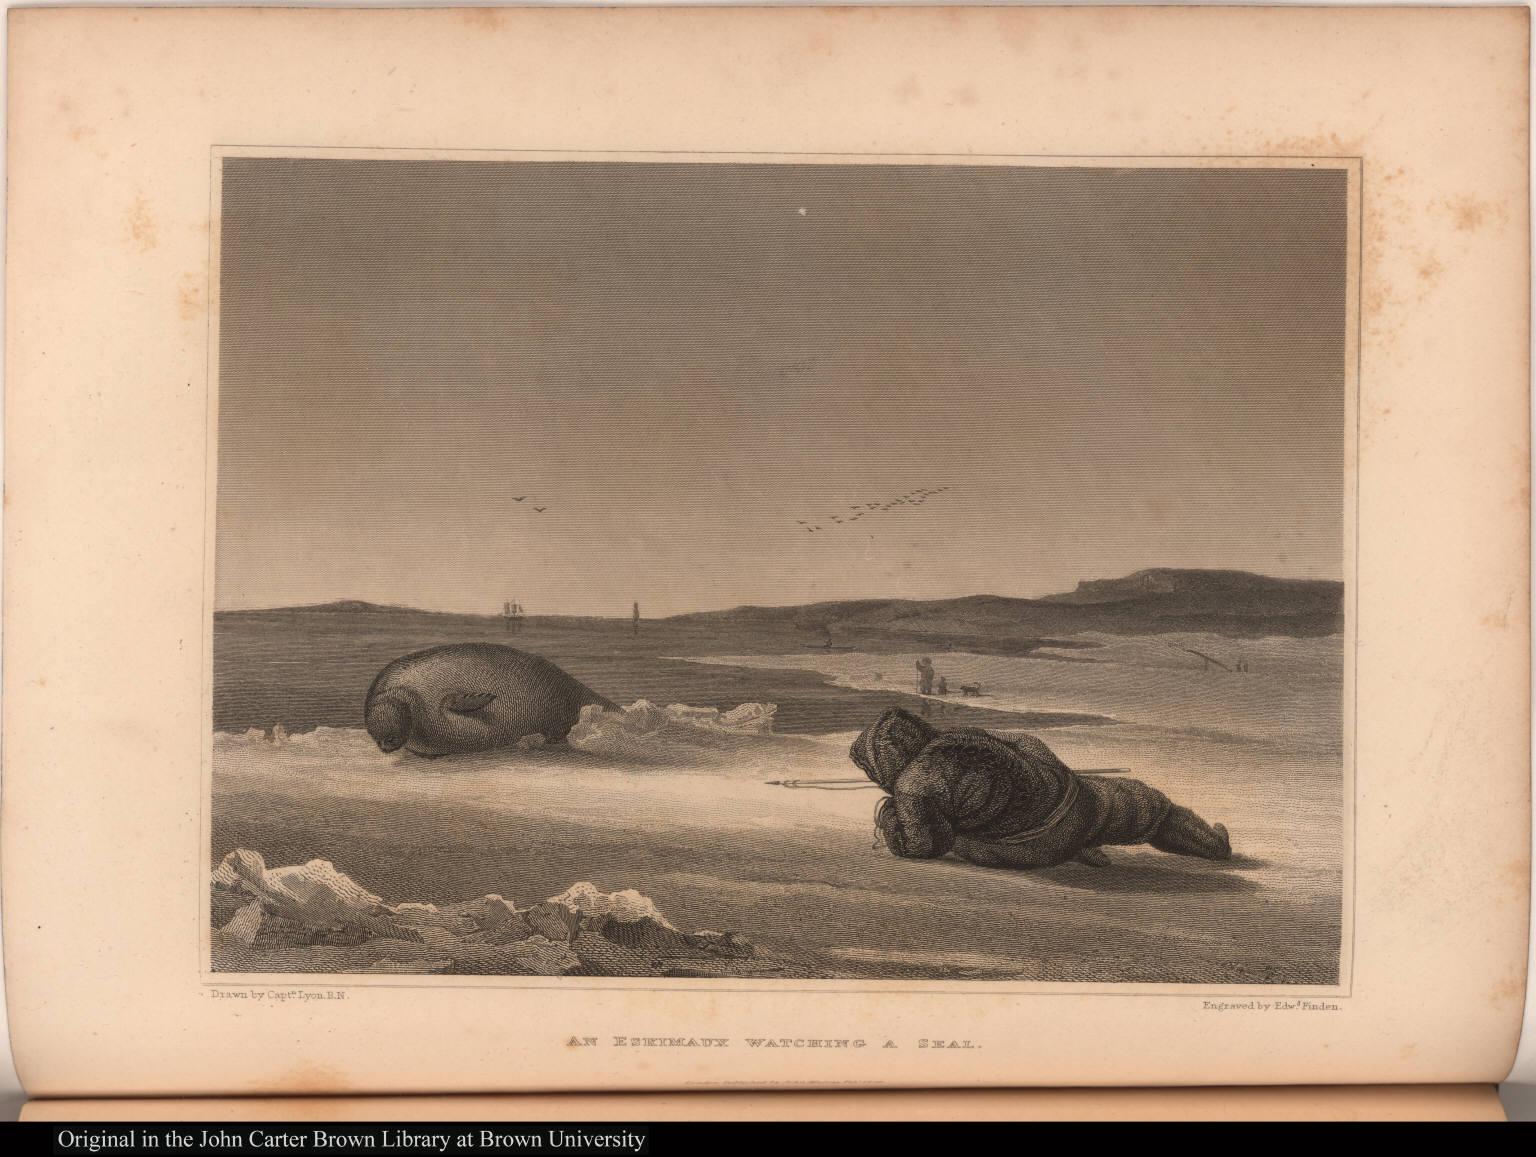 An Eskimaux Watching a Seal.